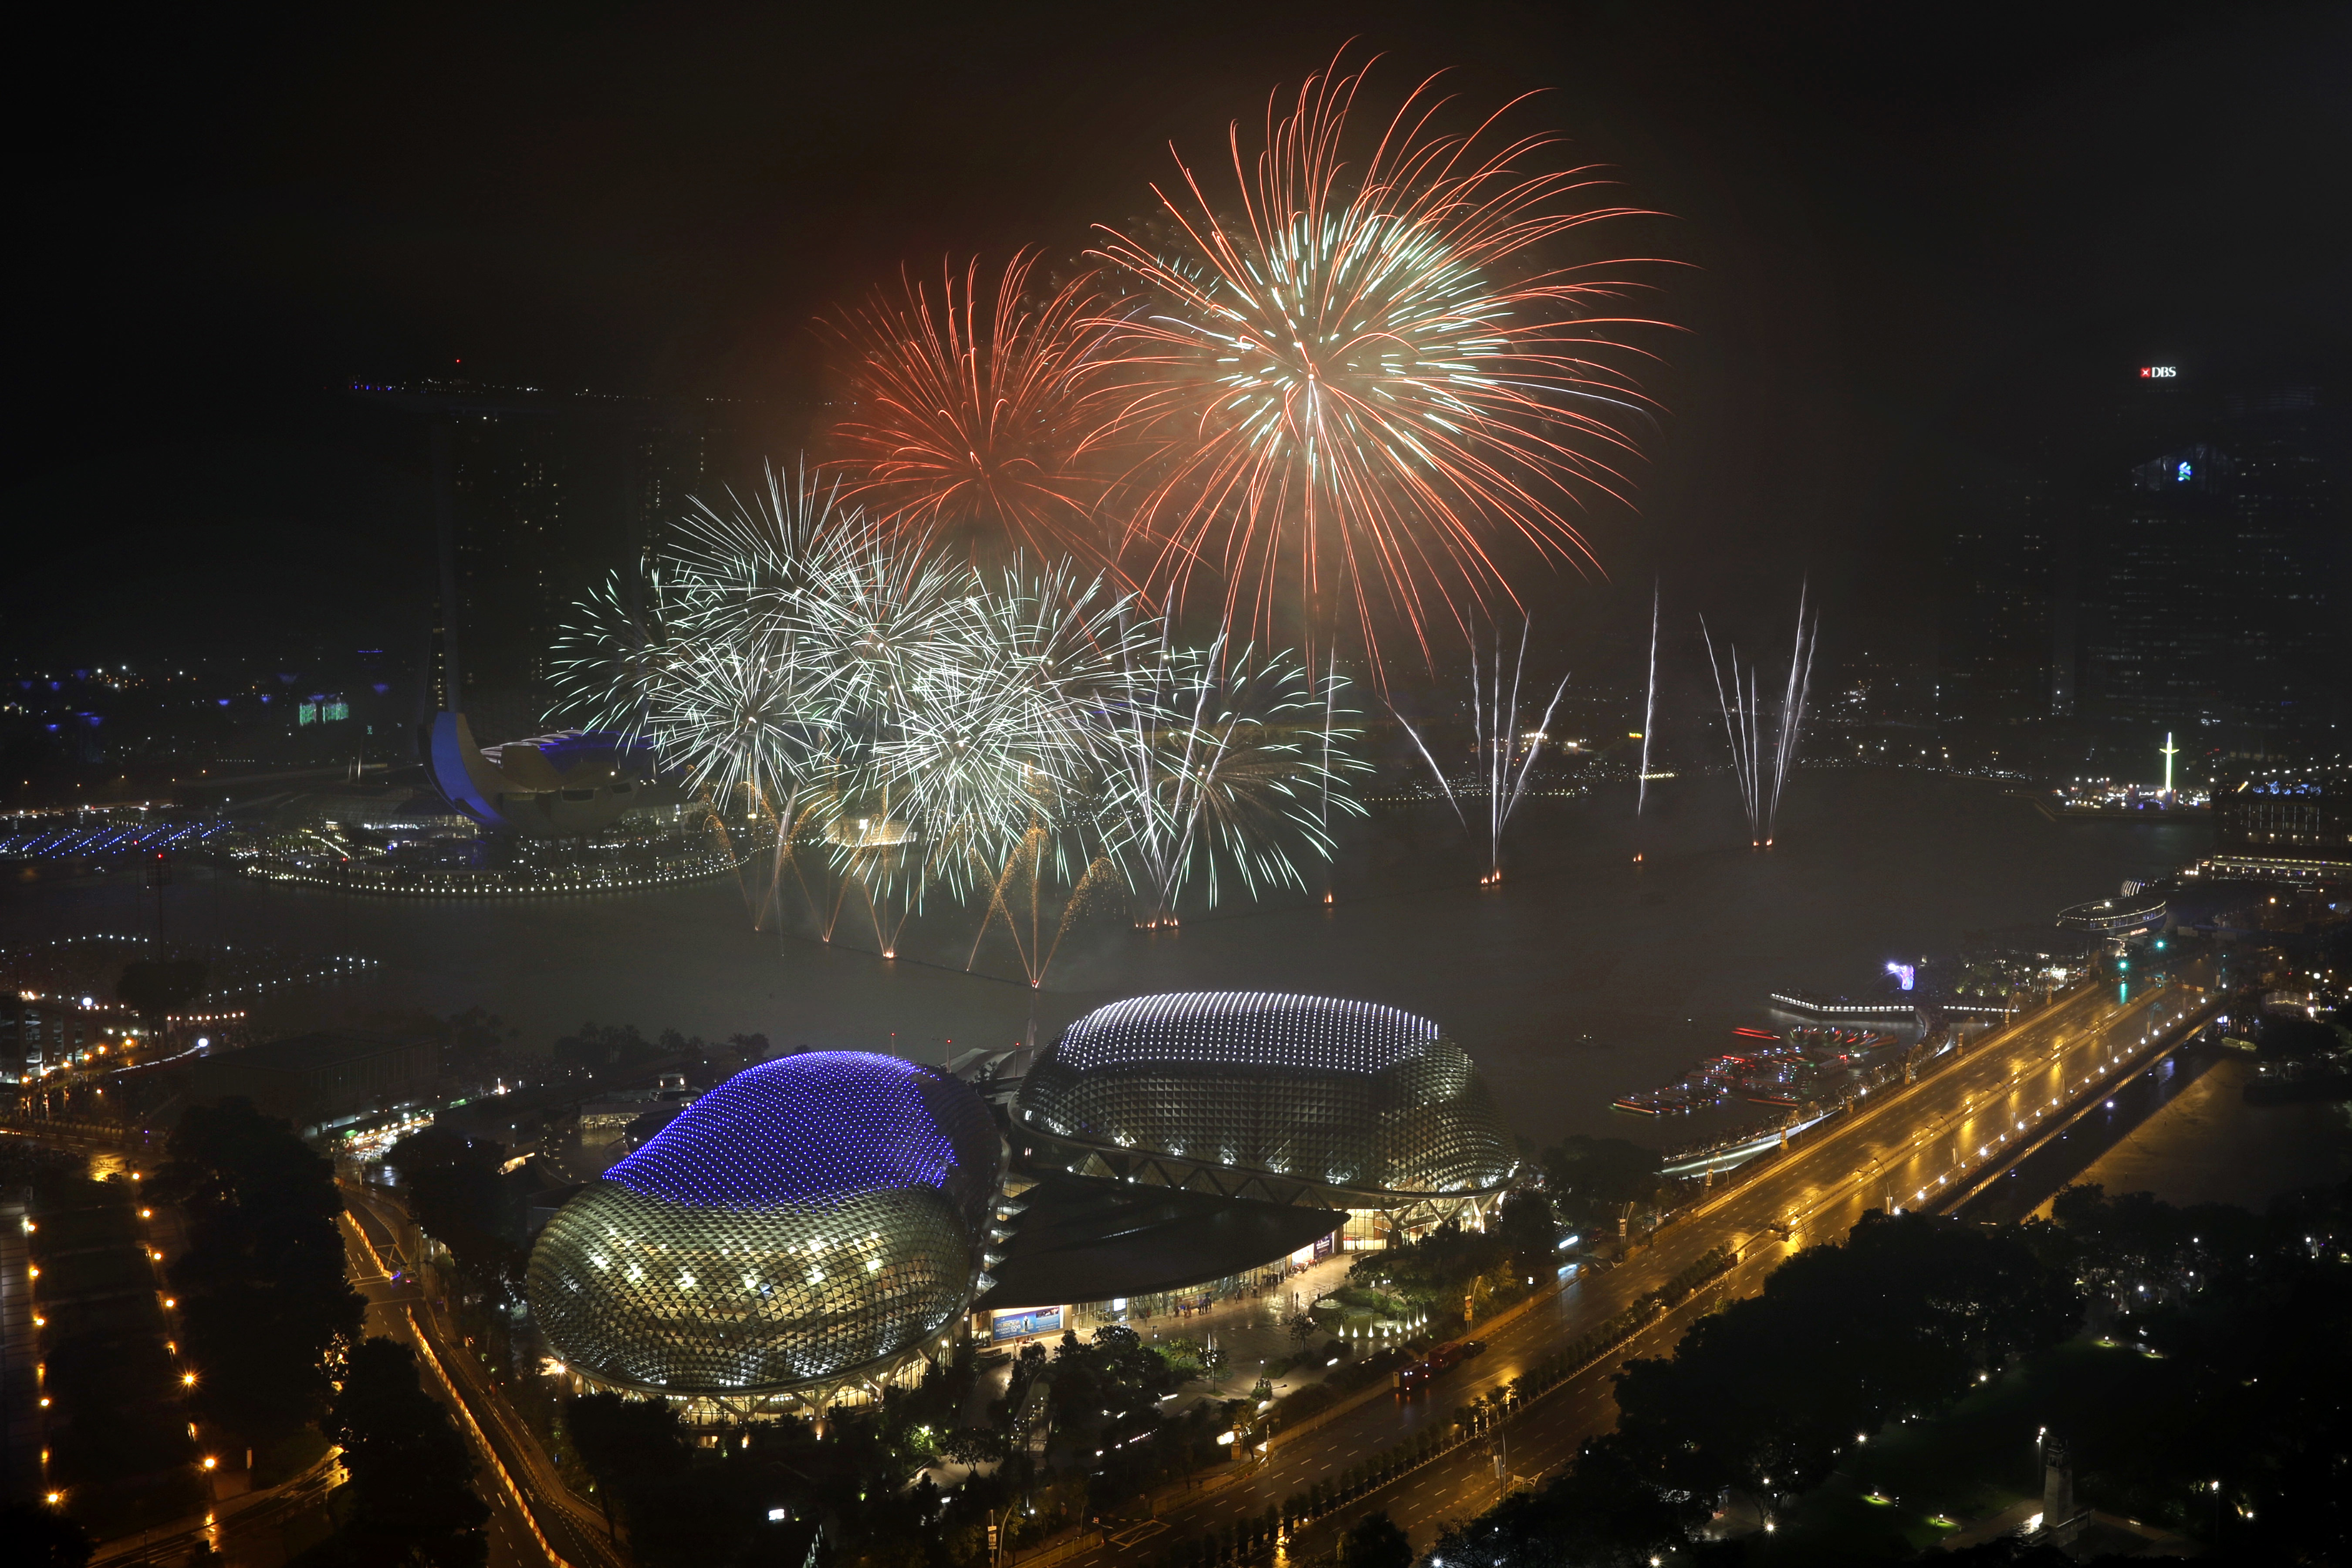 <div class='meta'><div class='origin-logo' data-origin='AP'></div><span class='caption-text' data-credit='AP Photo/Wong Maye-E'>Fireworks explode above Singapore's financial district at the stroke of midnight to mark the New Year's celebrations on Monday, Jan. 1, 2018, in Singapore.</span></div>